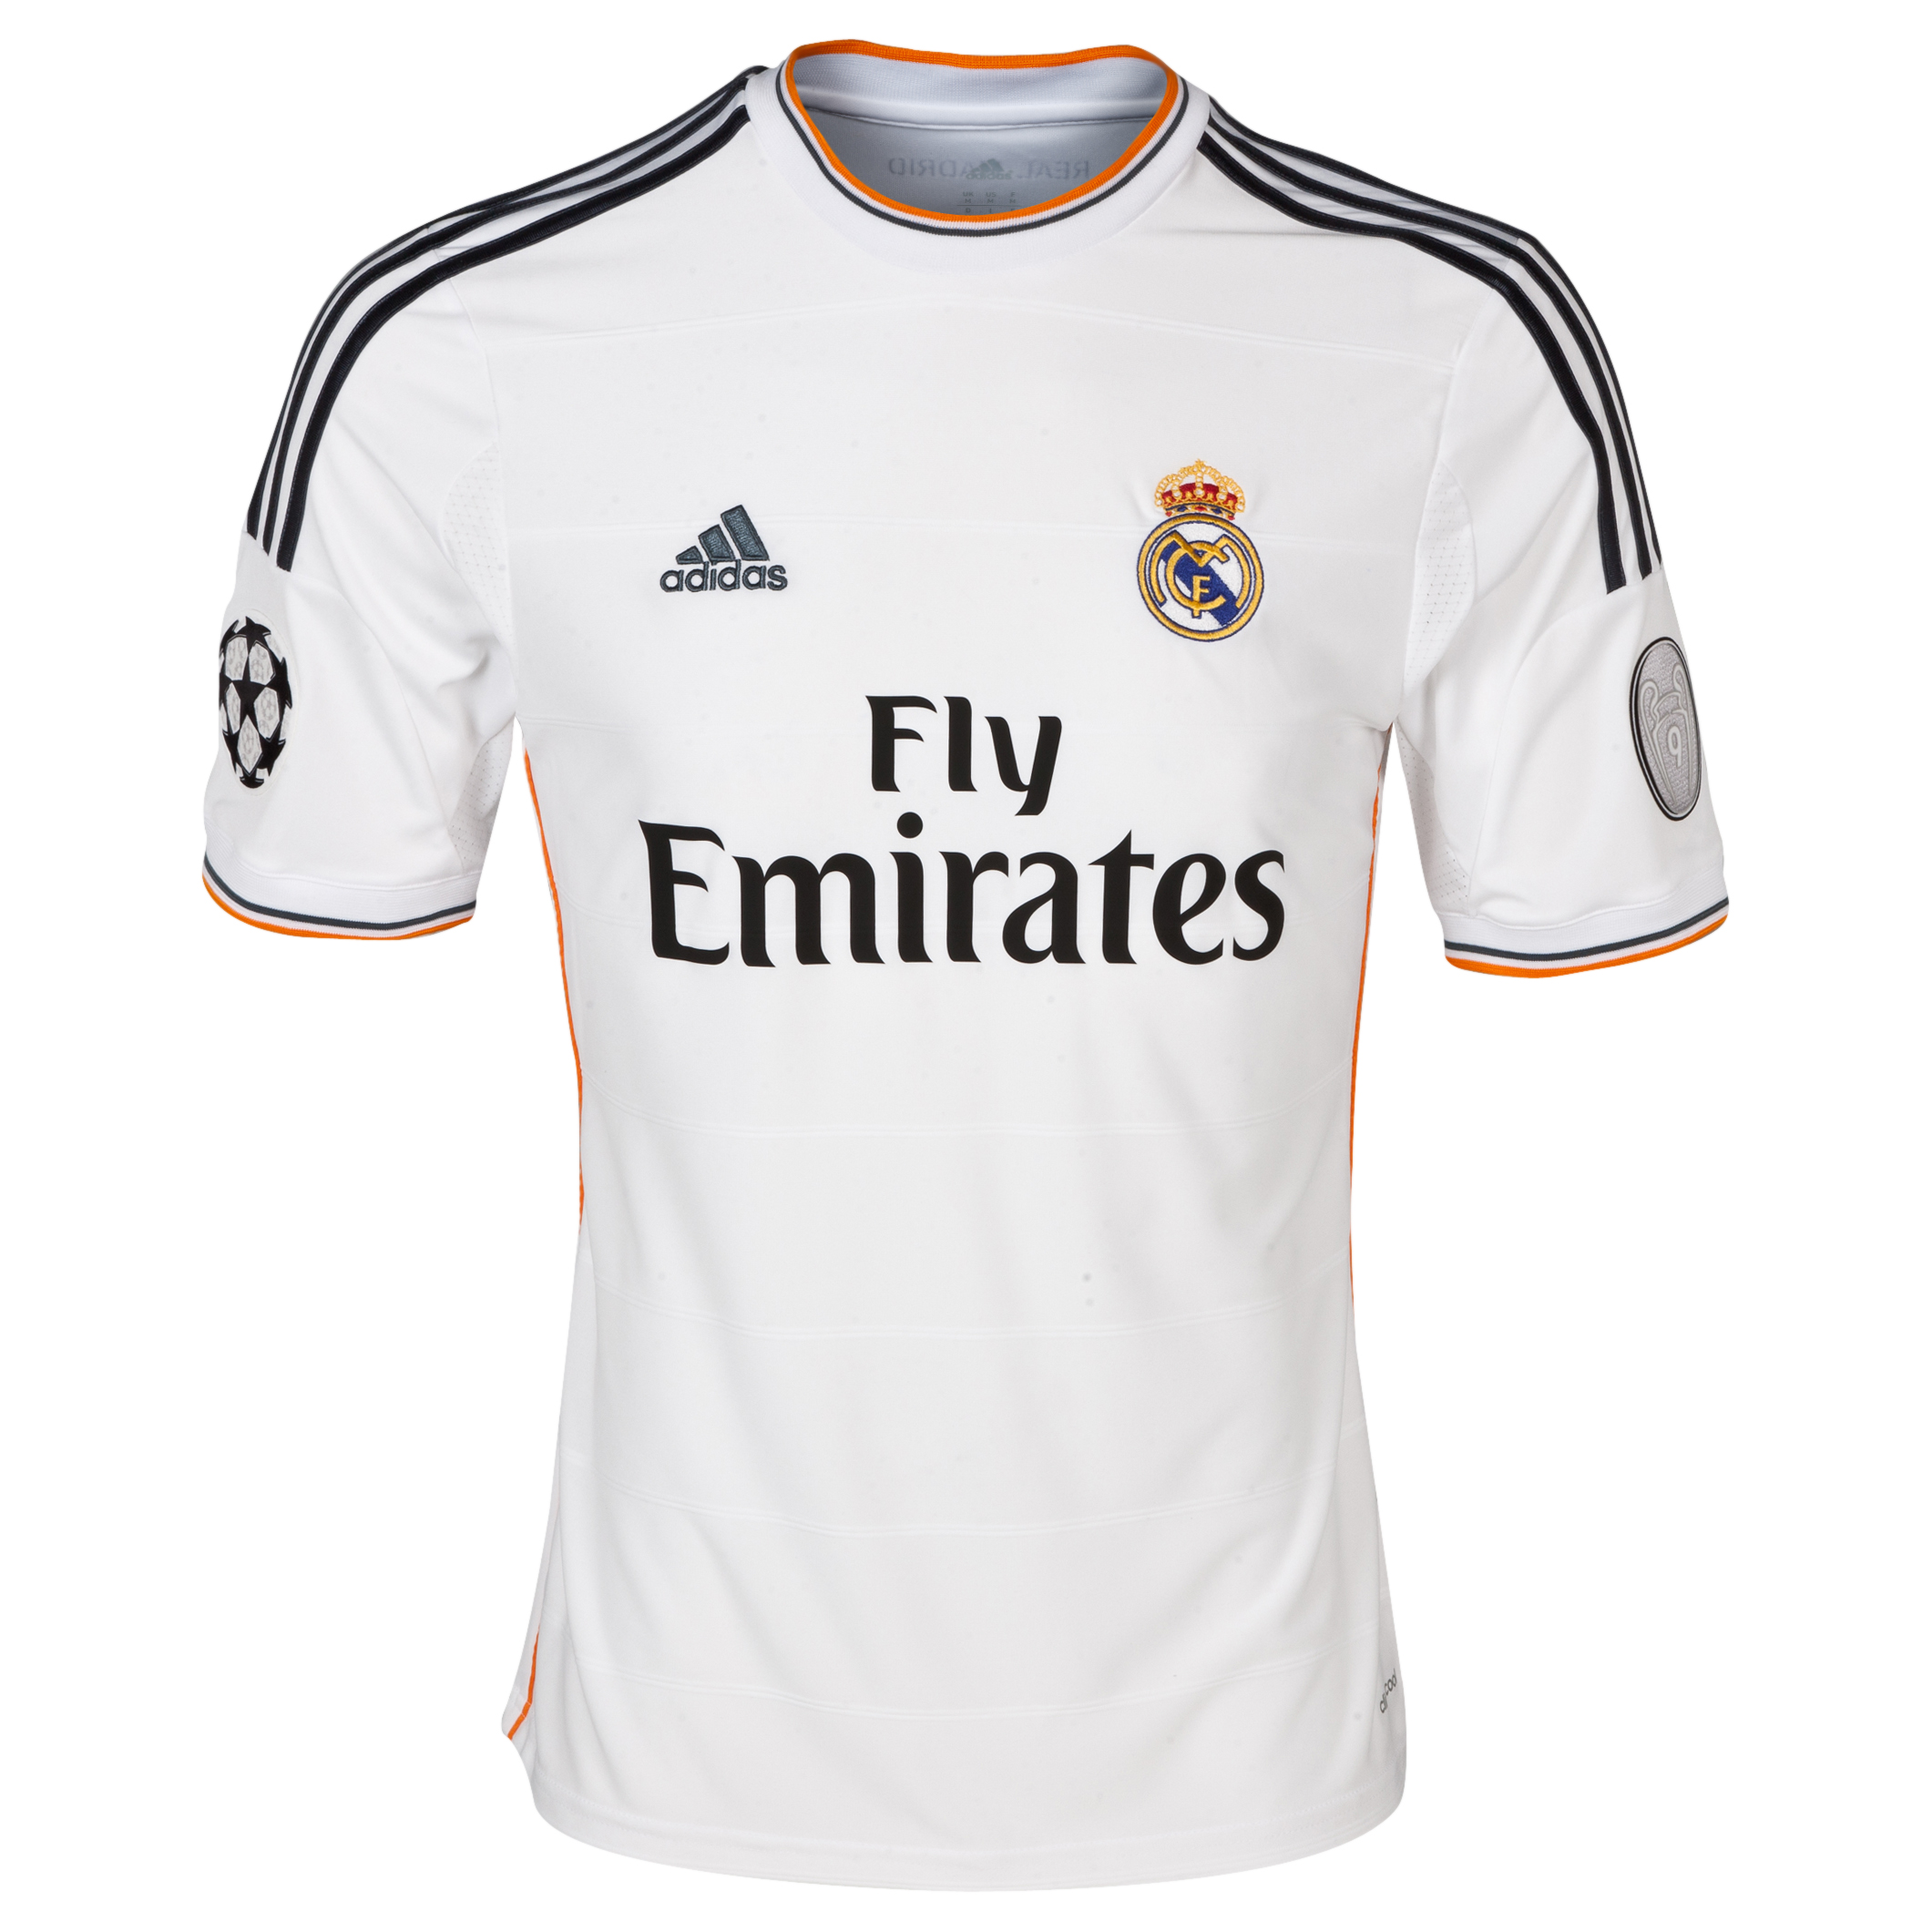 Real Madrid UEFA Champions League Home Shirt 2013/14